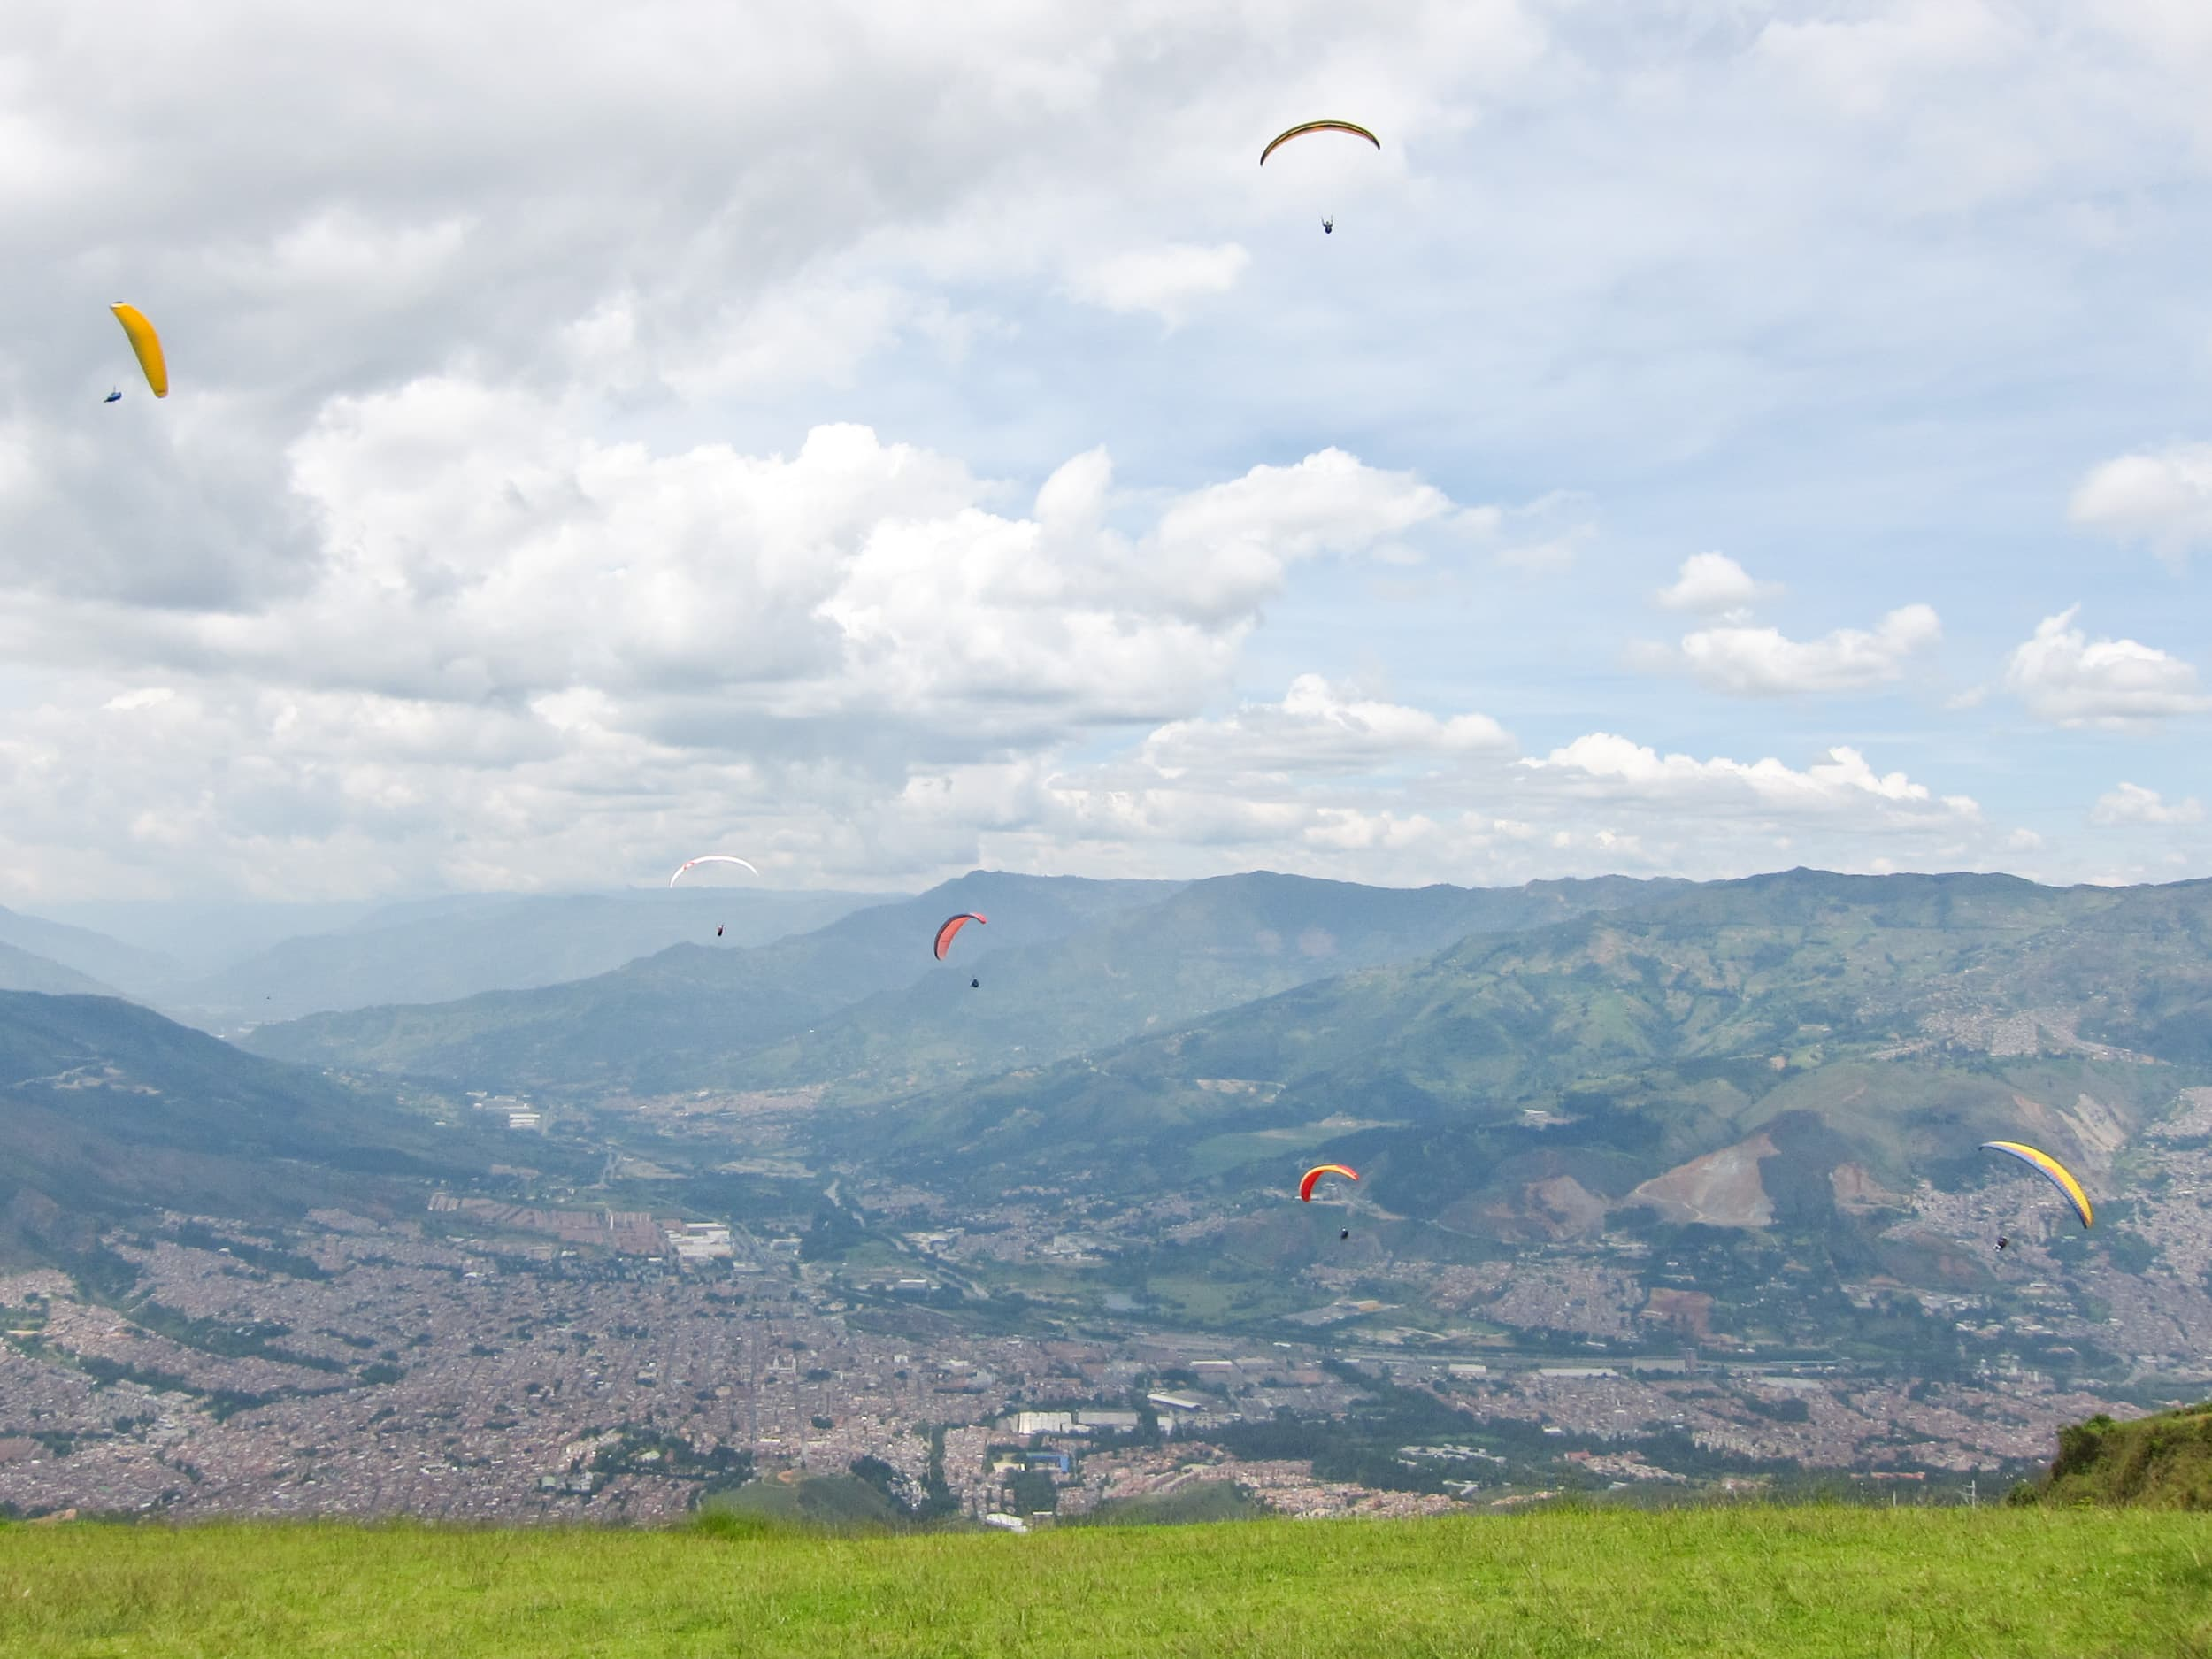 Paragliding is one of many fun things to do in Medellín, CO.